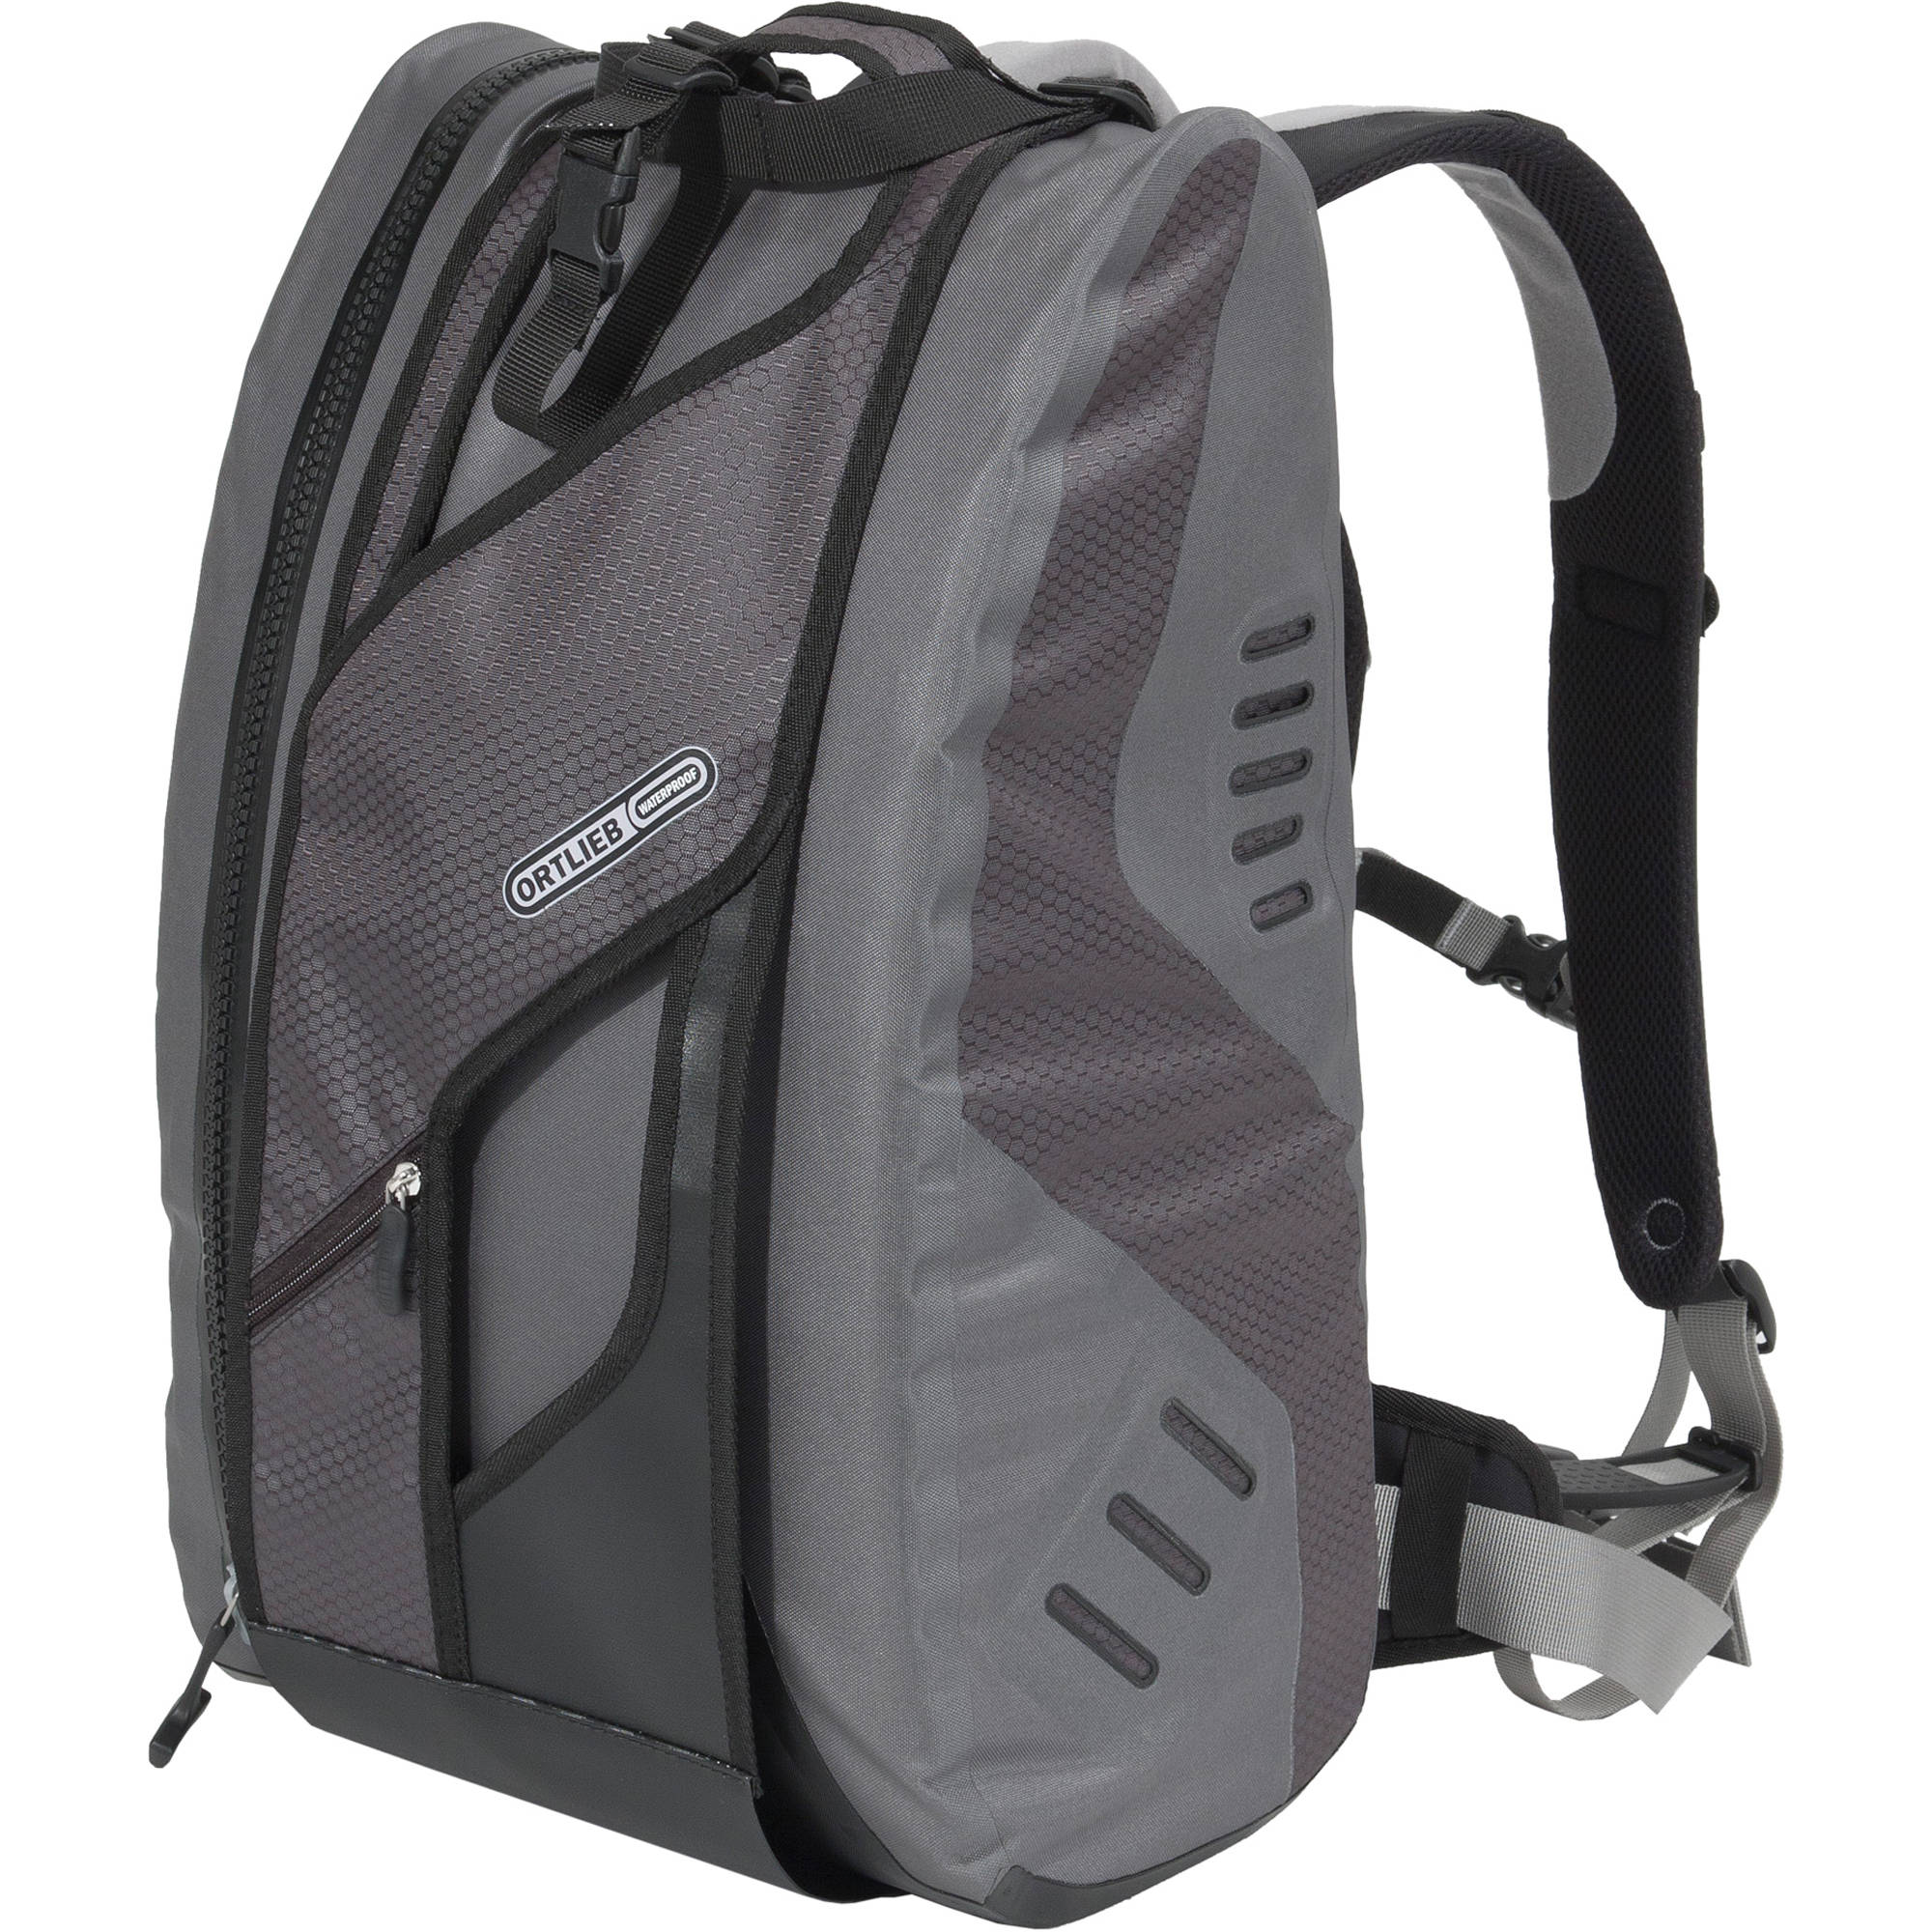 Ortlieb Day-Shot Camera Backpack P9651 B&H Photo Video